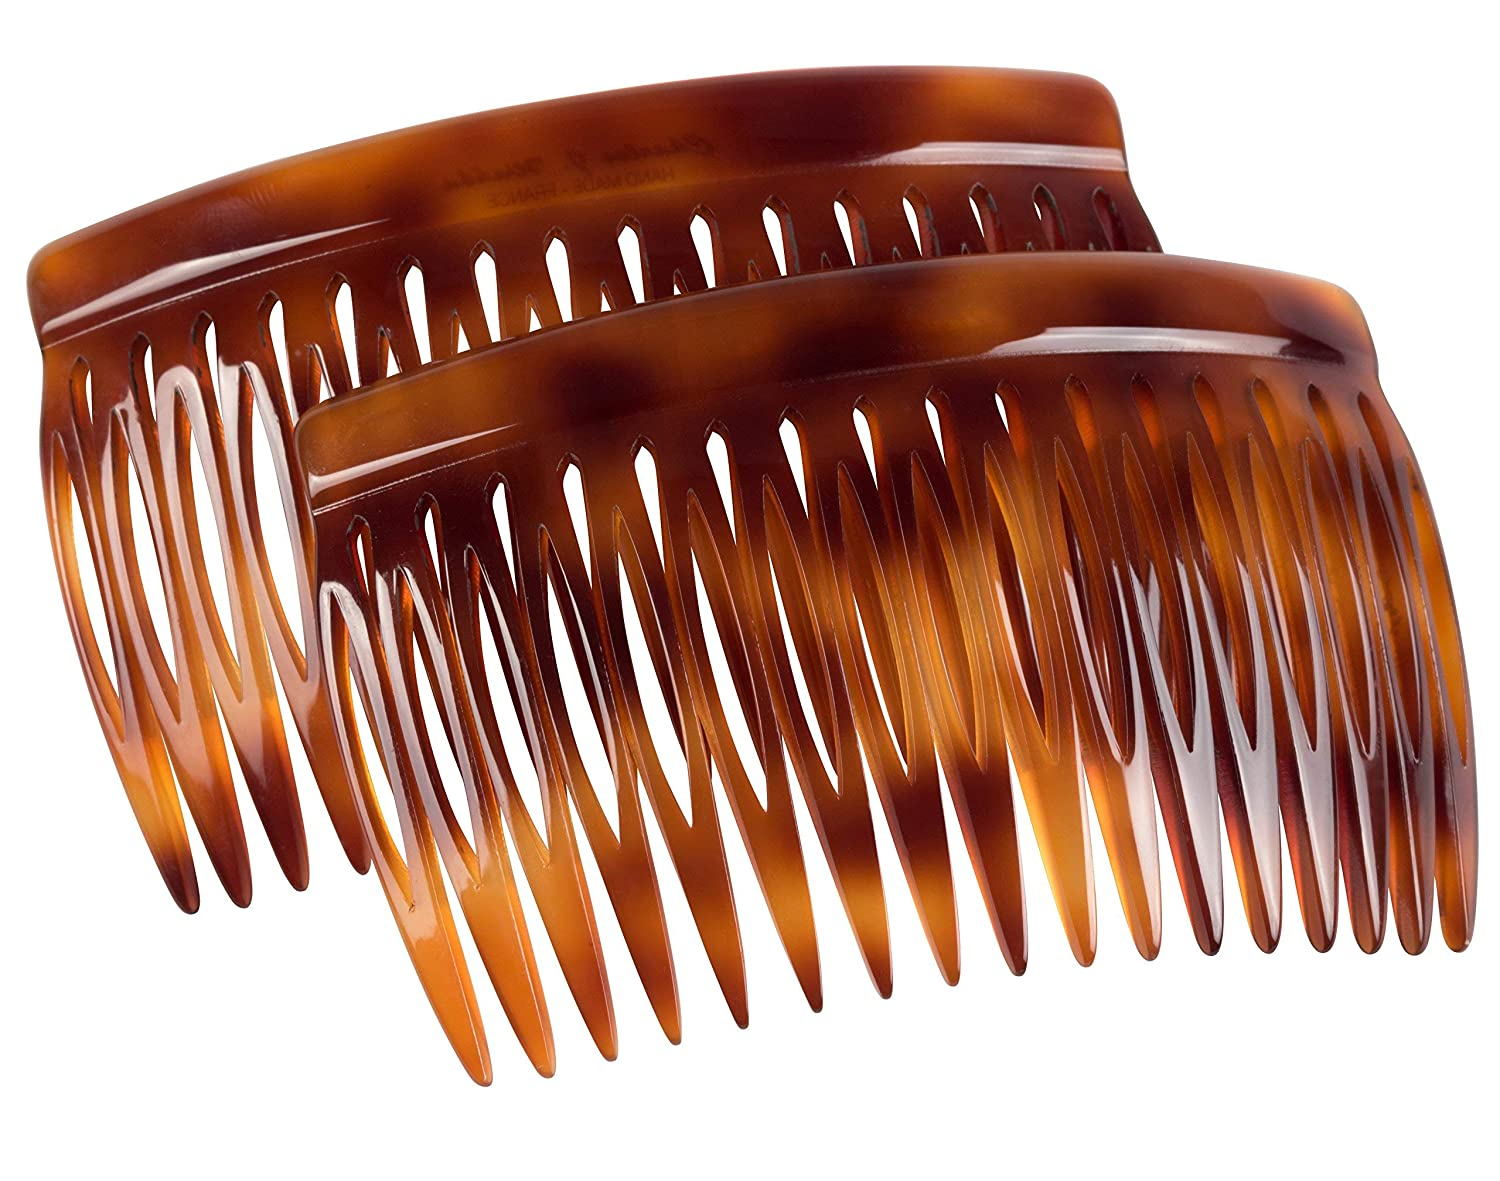 Charles J. Wahba Side Comb (Paired) - 17 Teeth (Mock Tortoise Color) Handmade in France : Decorative Hair Combs : Beauty